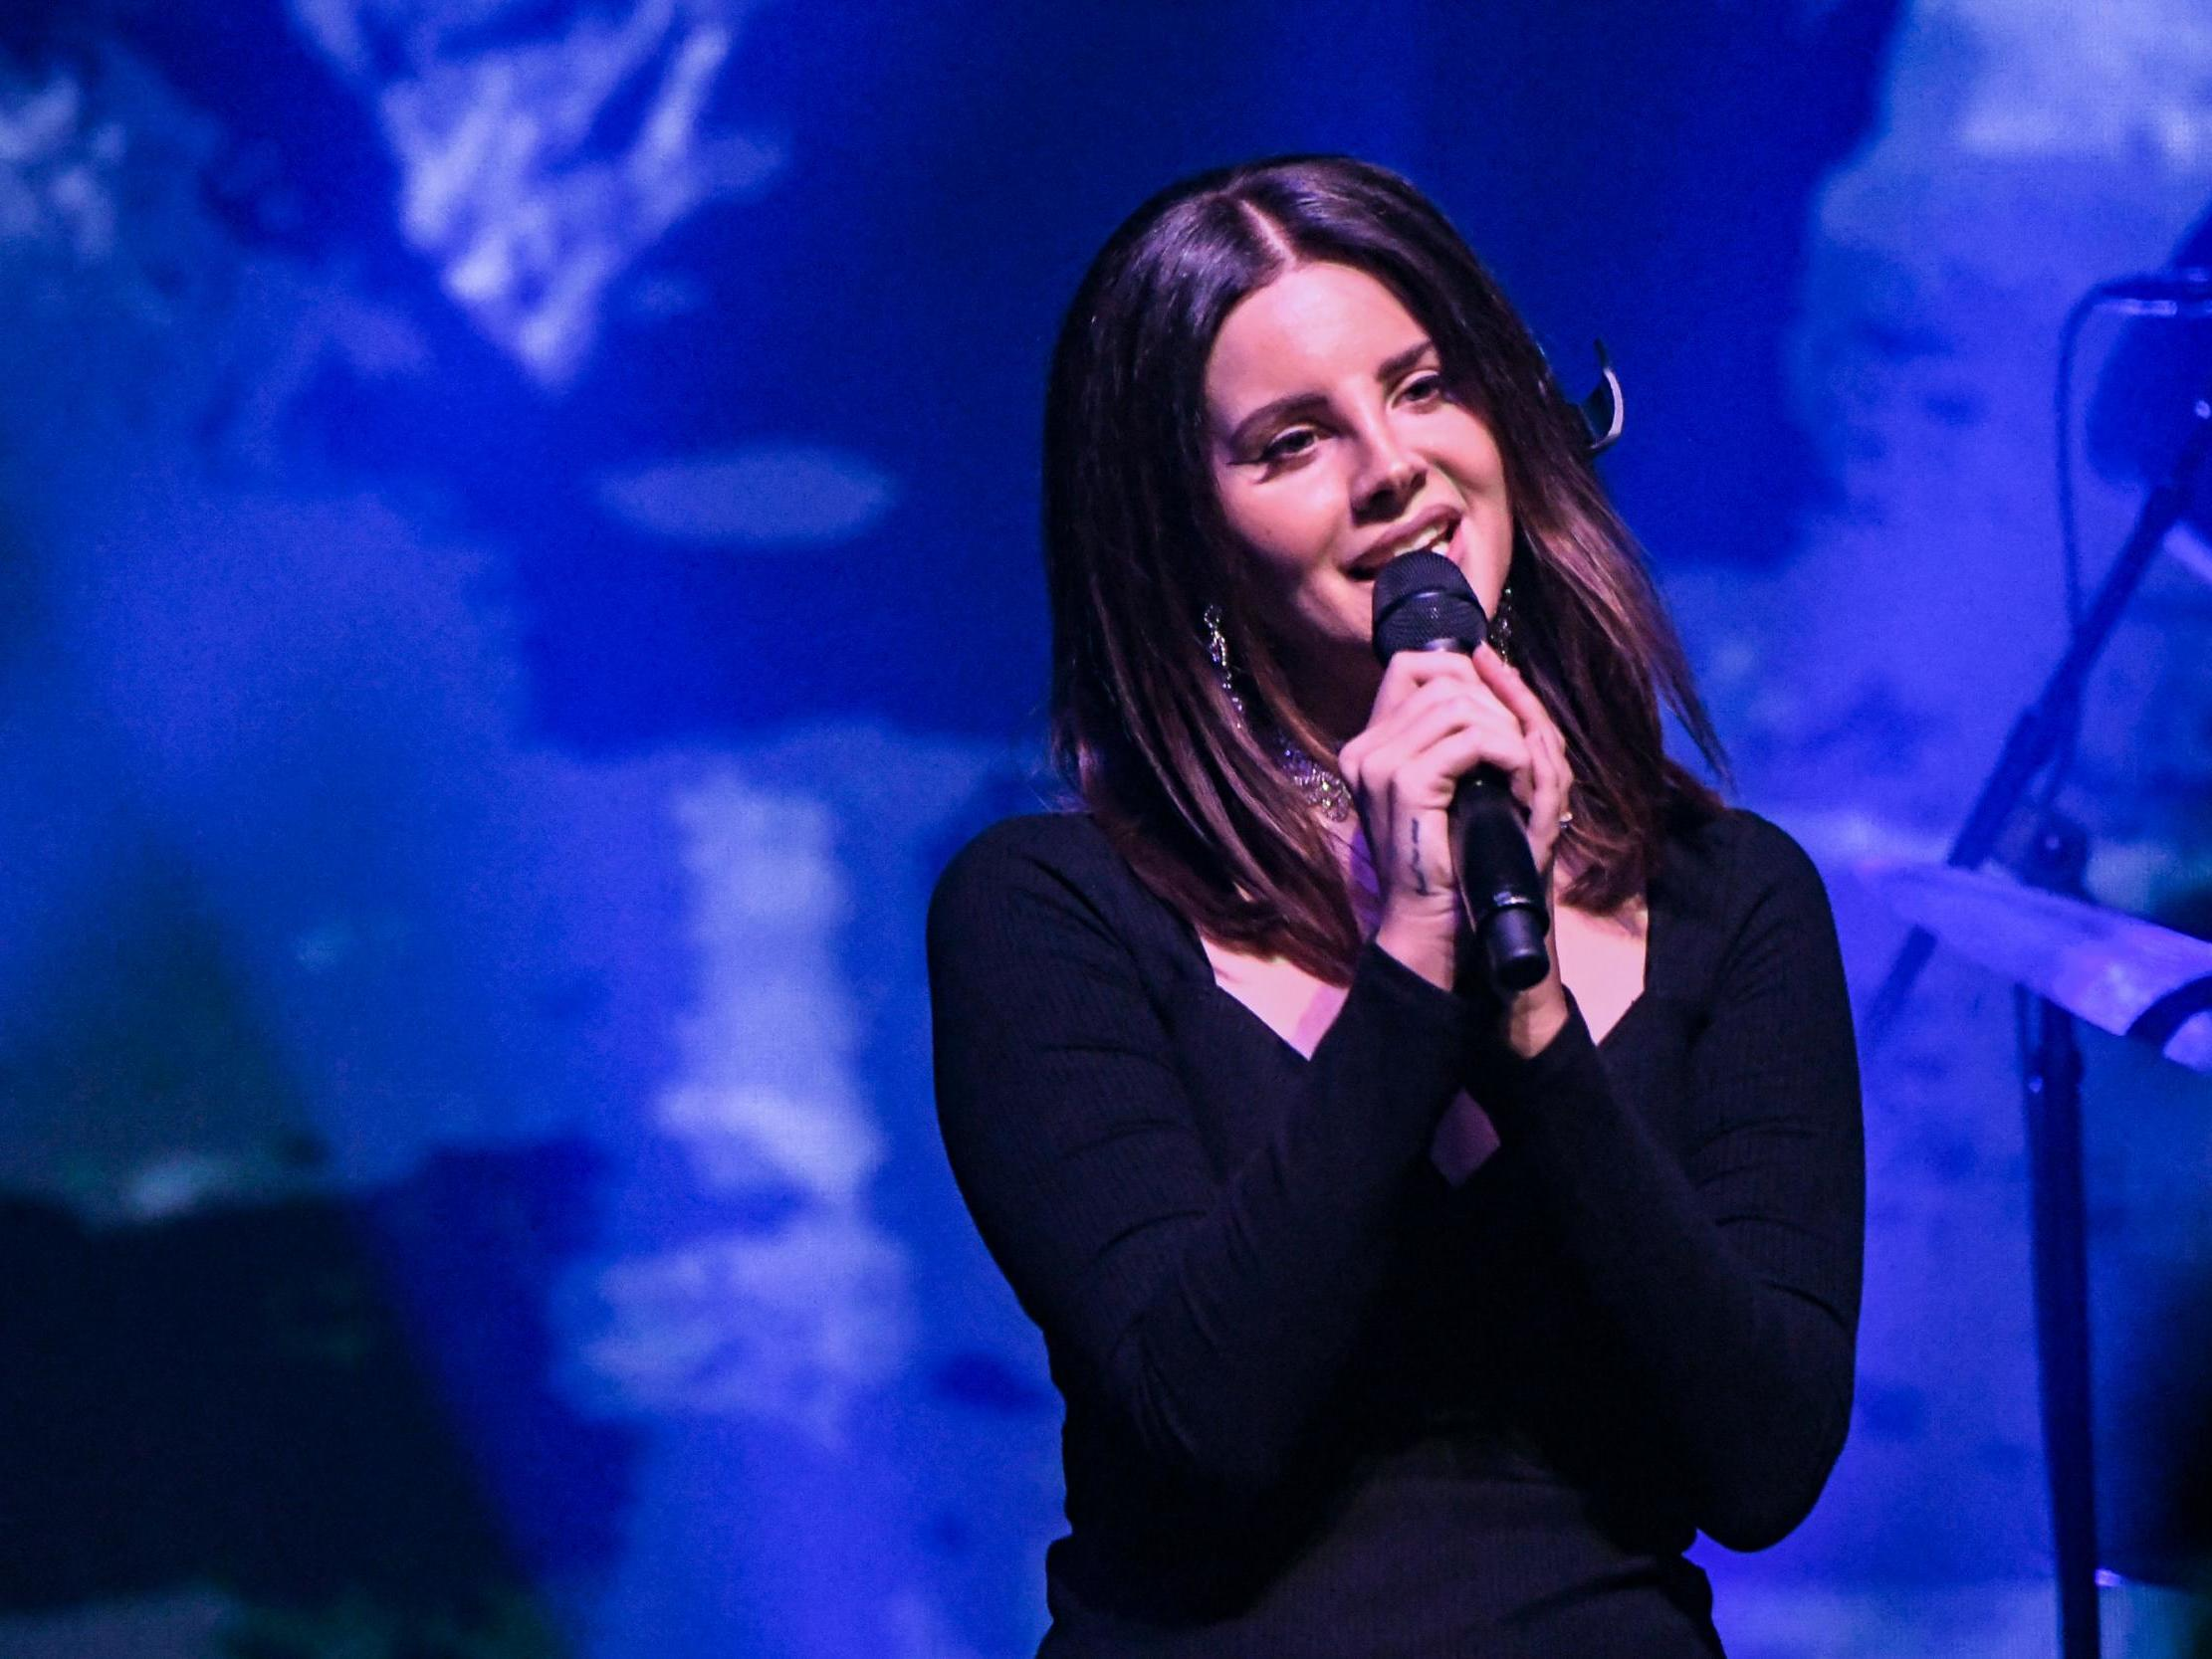 Why I feel uneasy declaring my love for Lana Del Rey's music